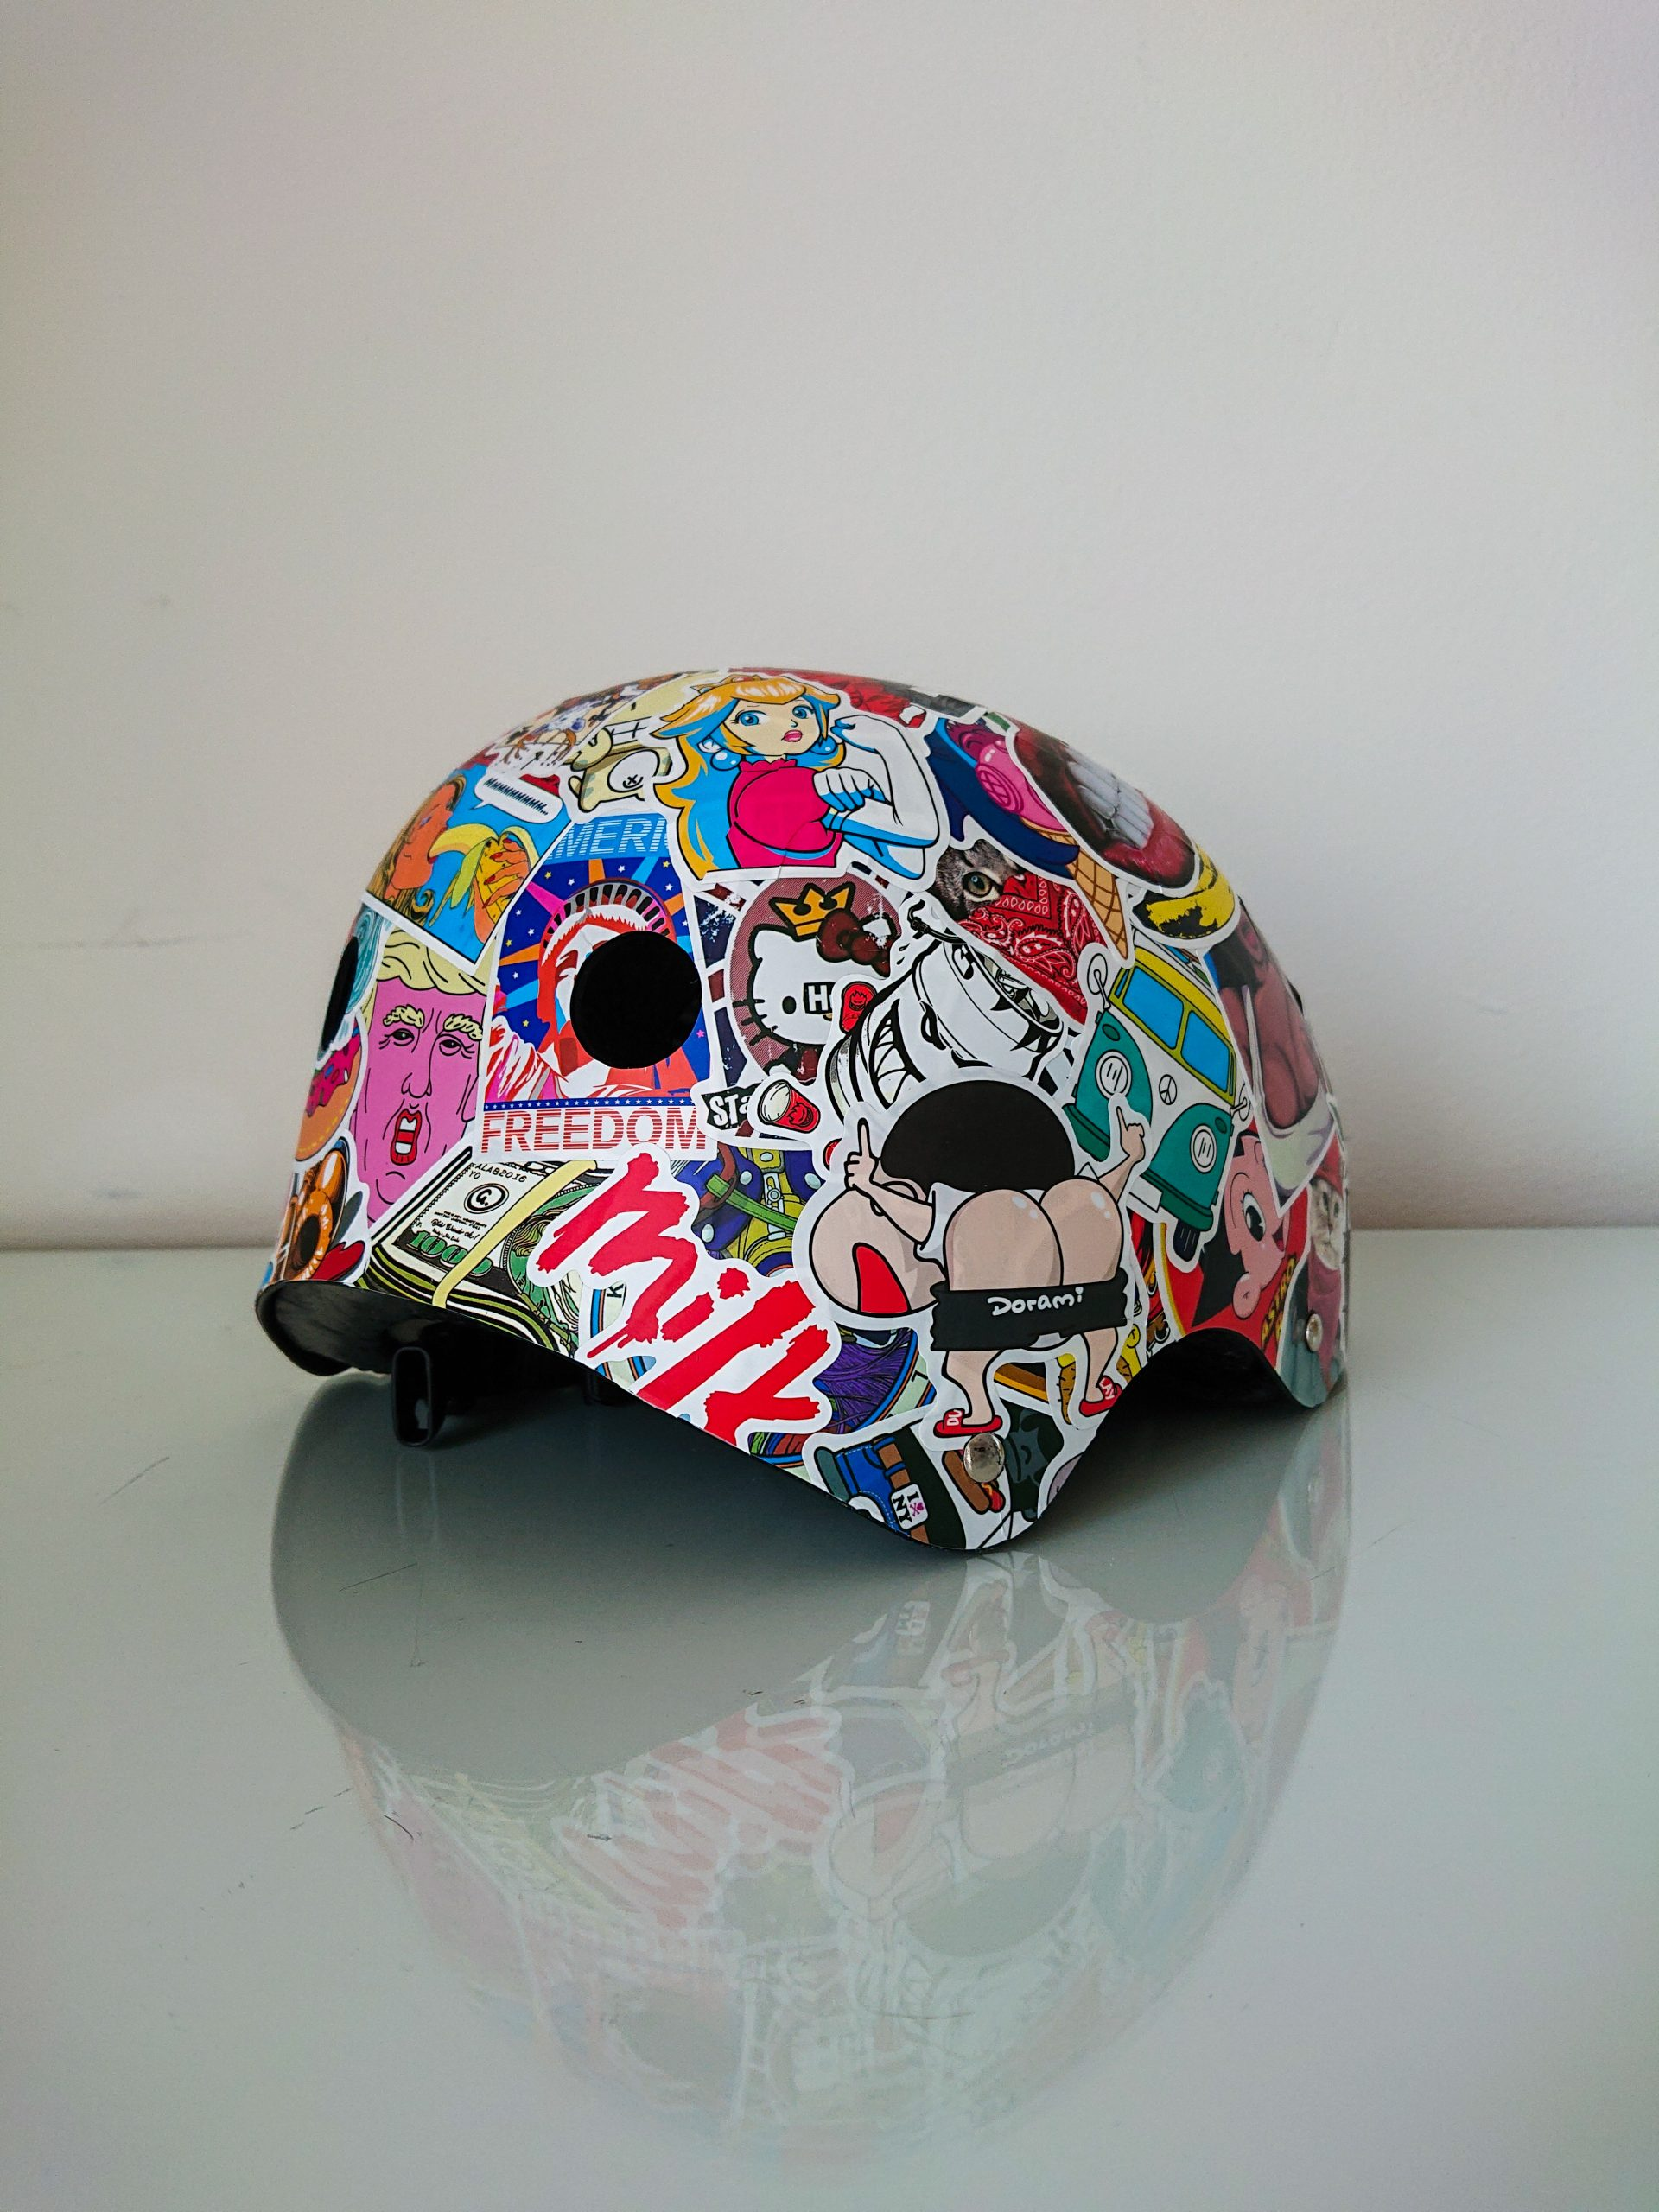 Sticker Bombing Cycle Helmet – Bike Life